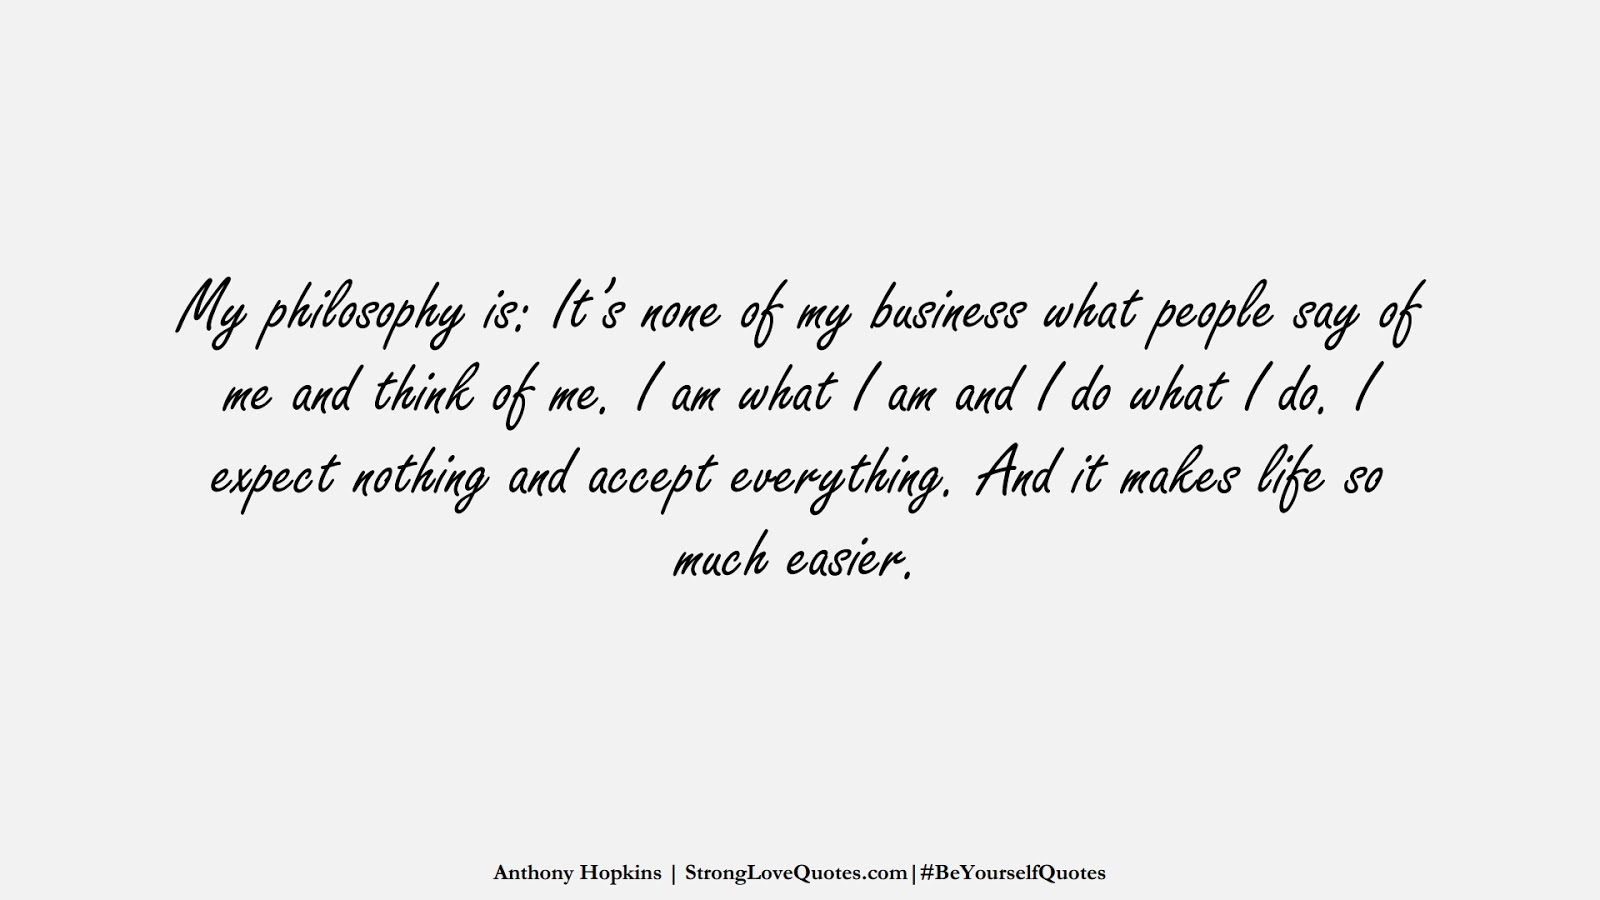 My philosophy is: It's none of my business what people say of me and think of me. I am what I am and I do what I do. I expect nothing and accept everything. And it makes life so much easier. (Anthony Hopkins);  #BeYourselfQuotes